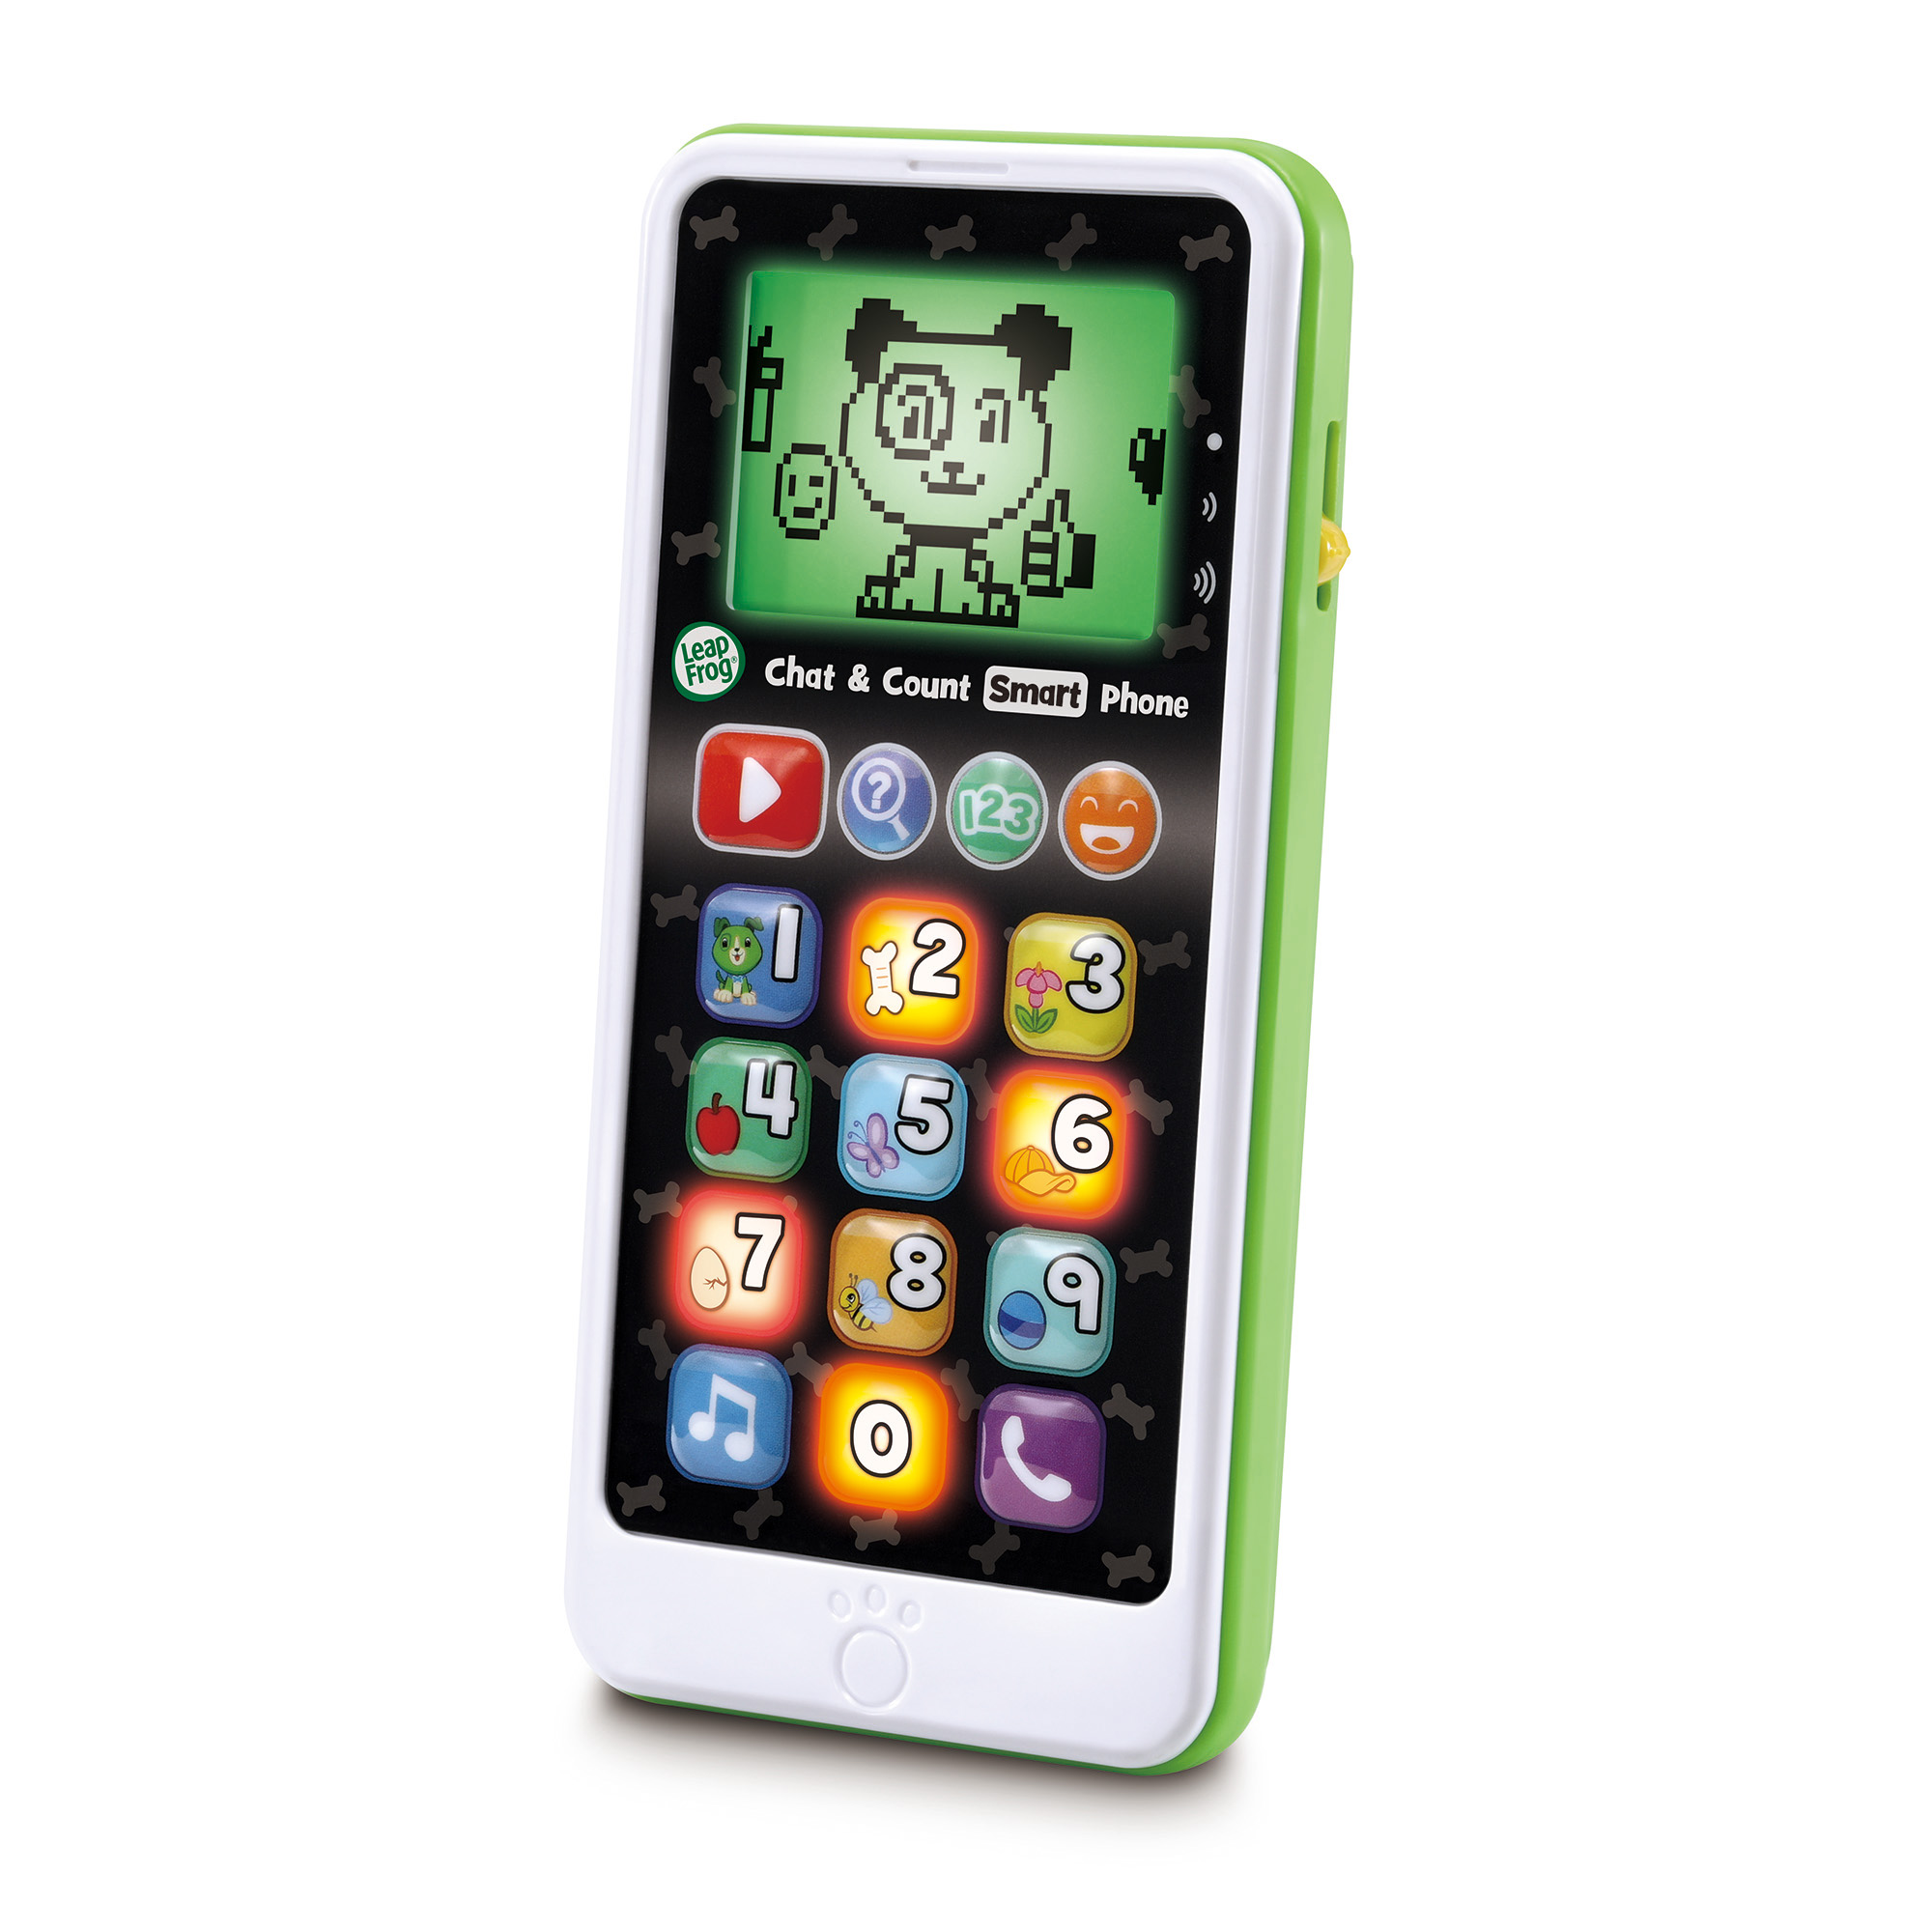 Picture of LeapFrog Chat & Count Phone Refresh